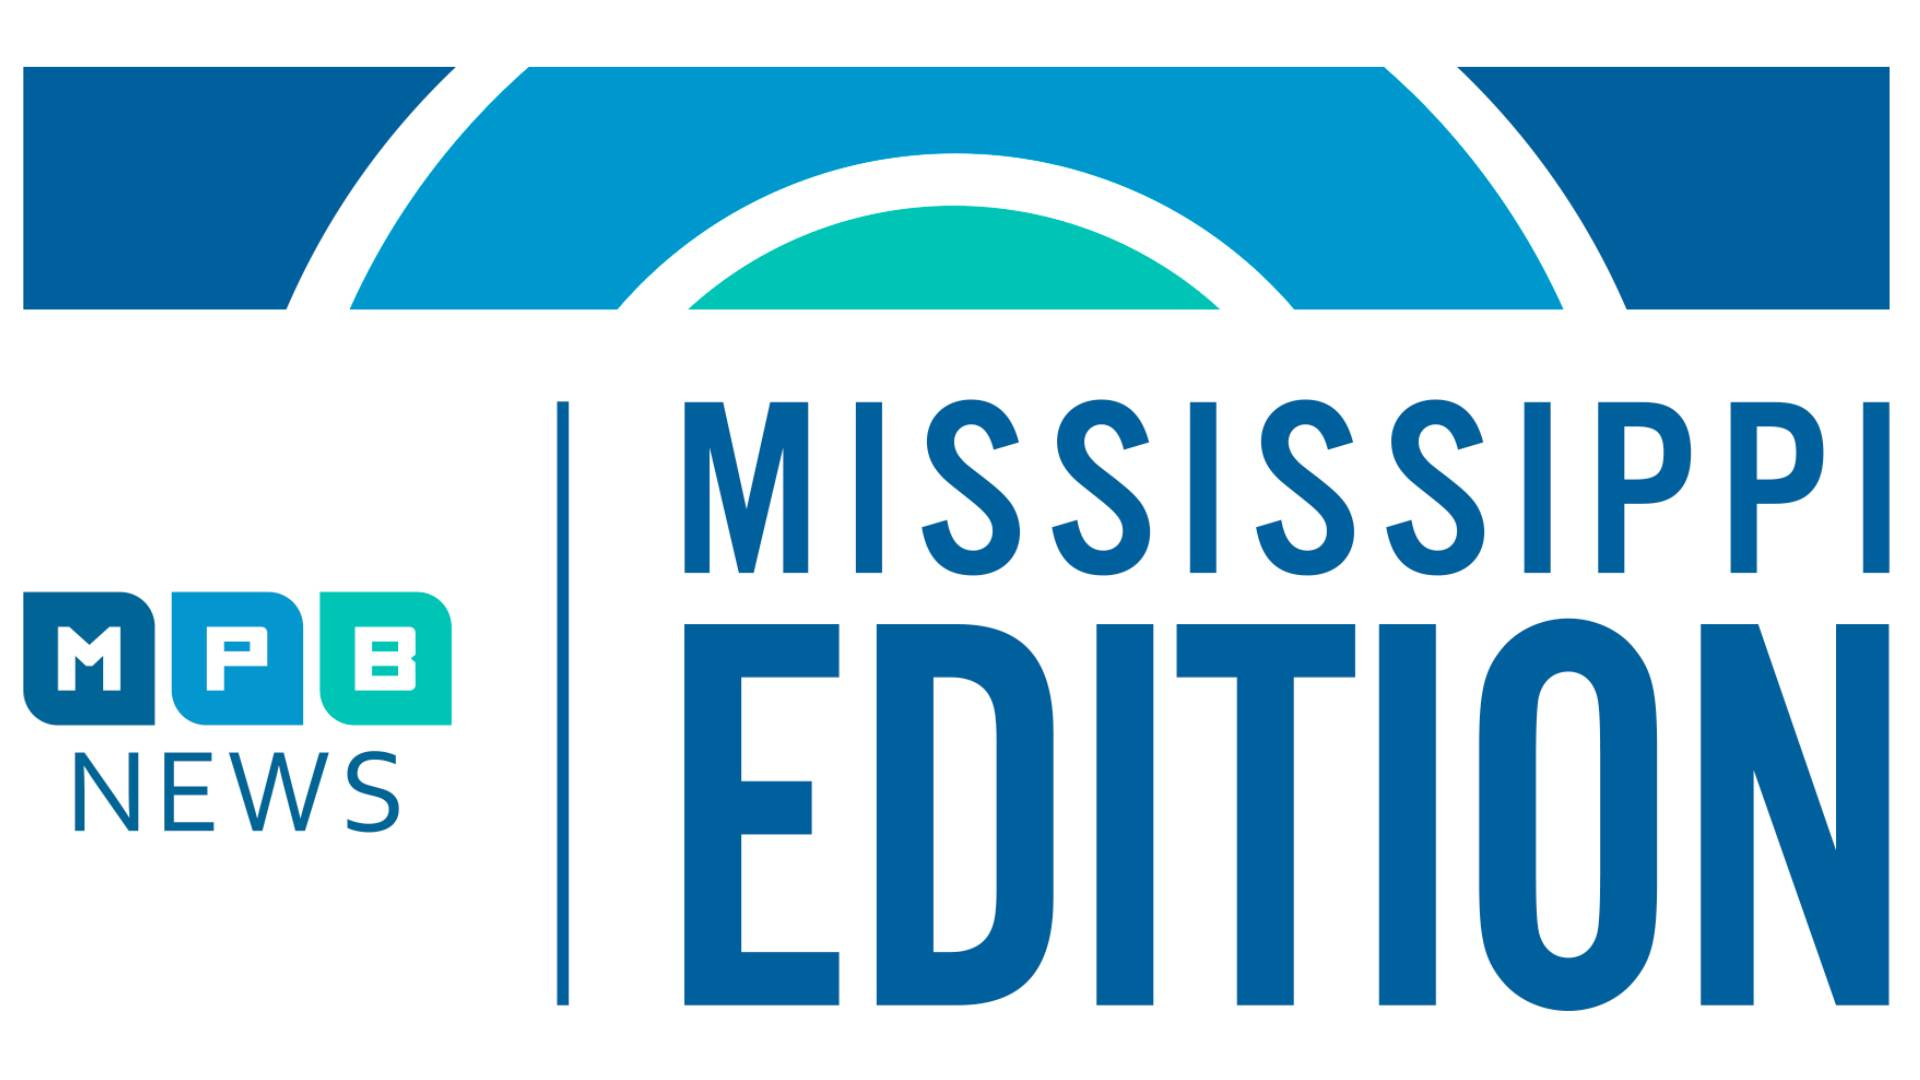 Mississippi Edition: Tuesday, August 15